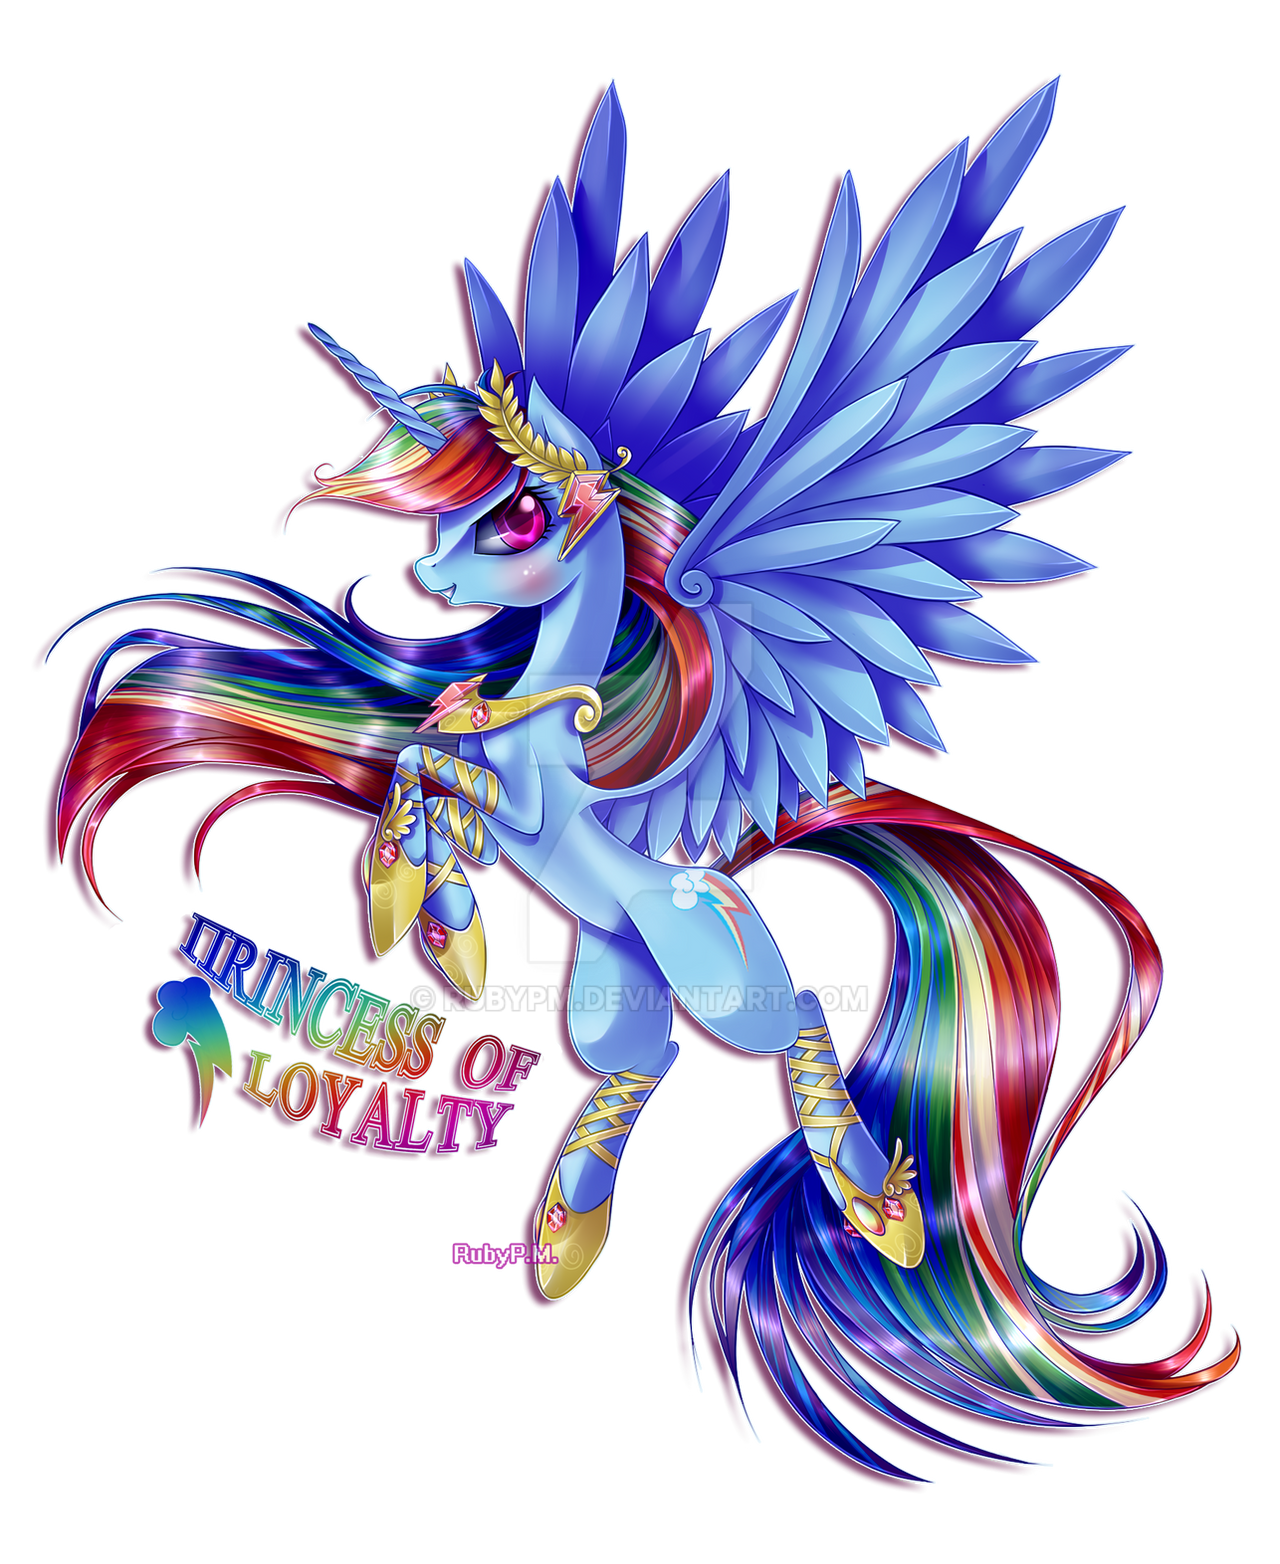 Princess of Loyalty by RubyPM